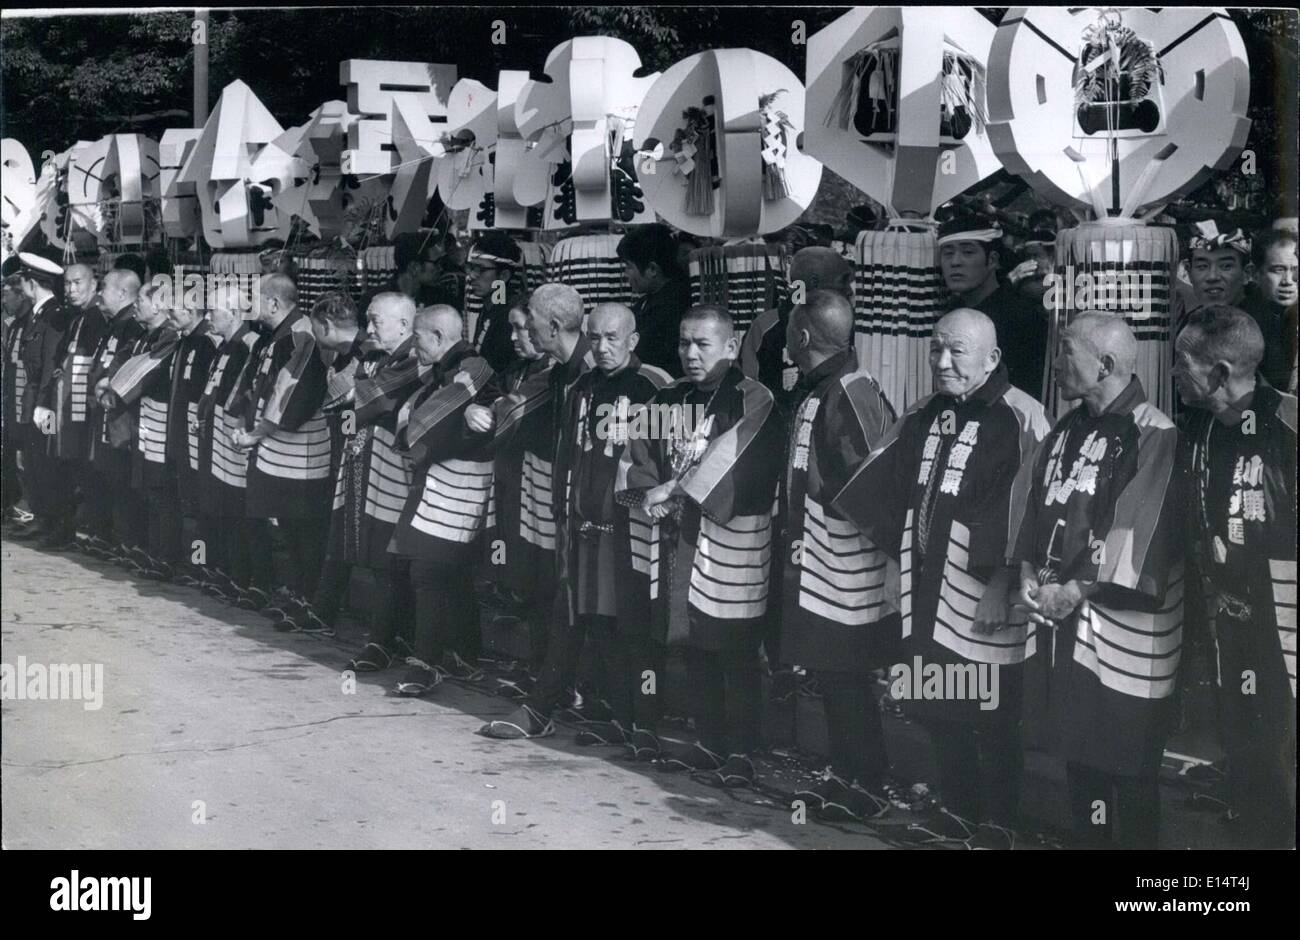 Apr. 18, 2012 - Some of the survivors of the old Tokyo volunteer fire fighters stand beneath their district insignas, - Stock Image